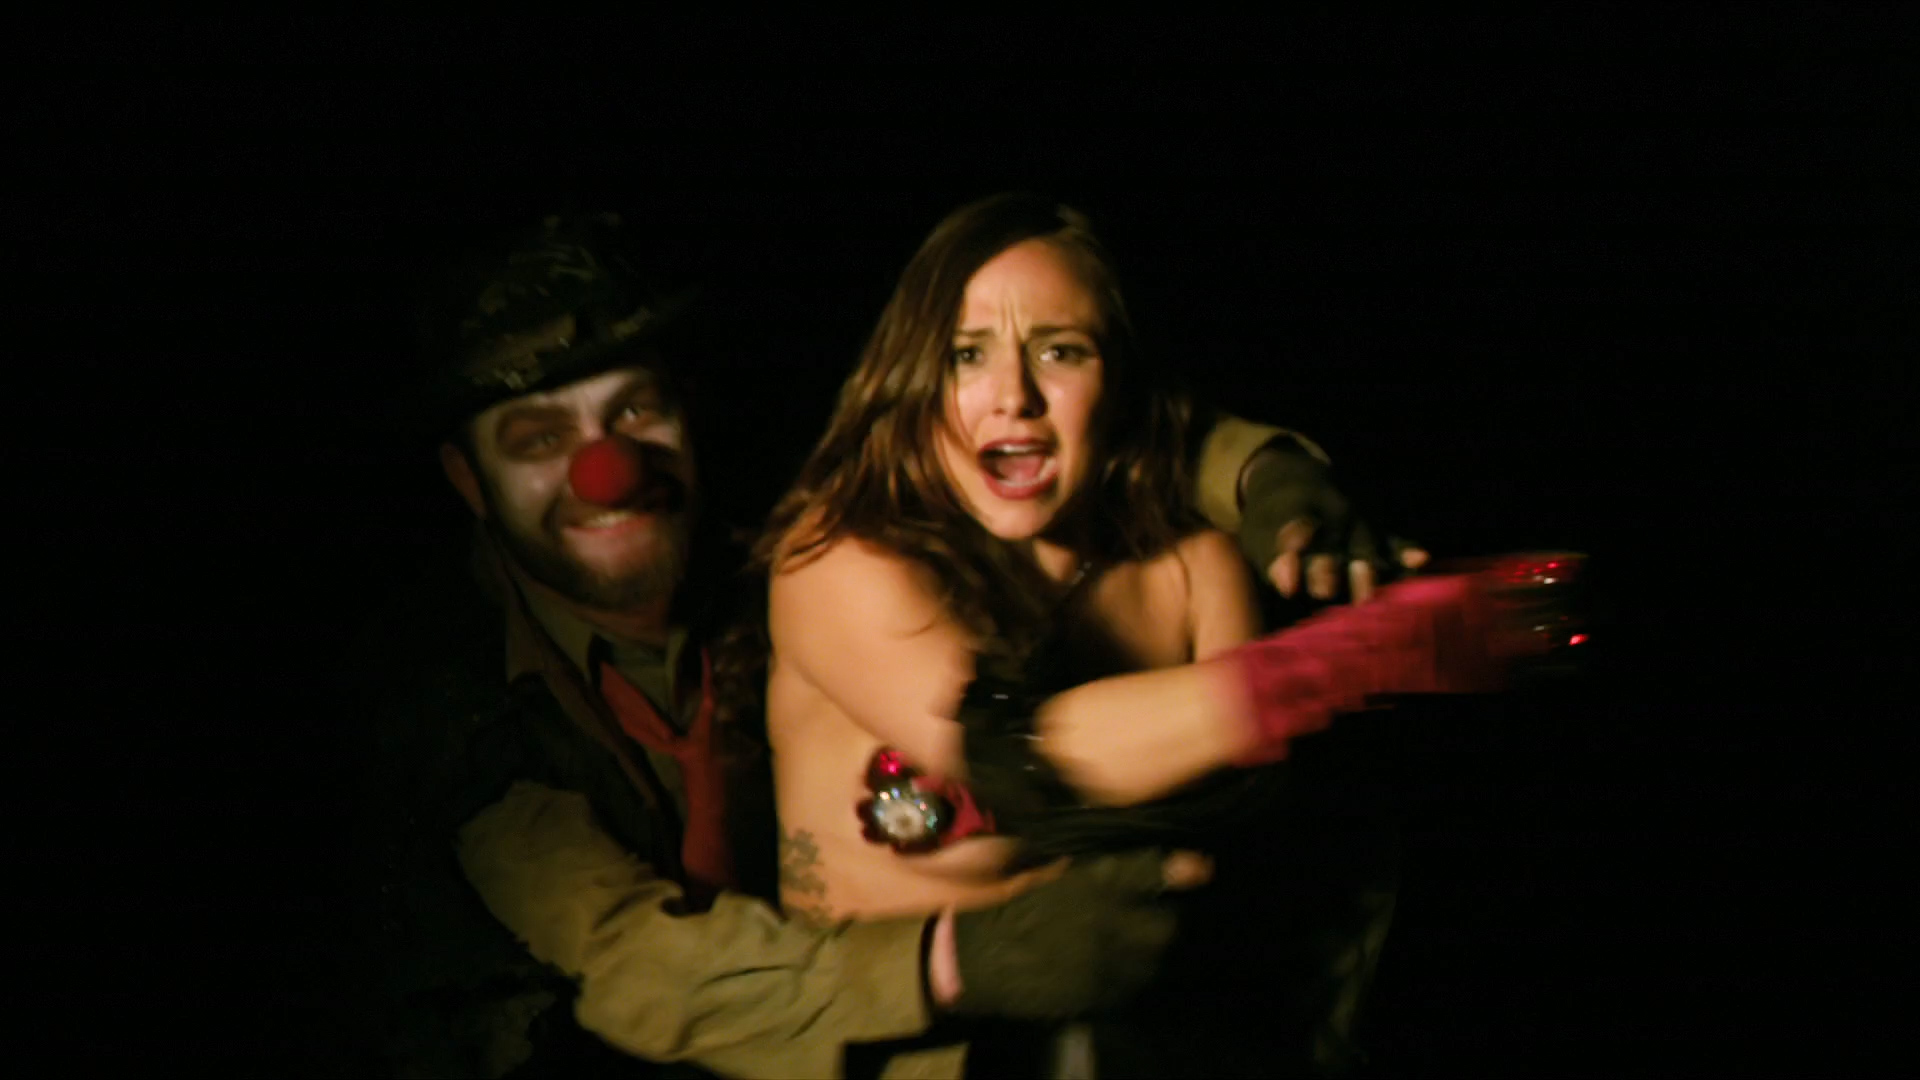 Briana Evigan nude topless with pasties - The Devil's Carnival (2012) hd1080p. (6)